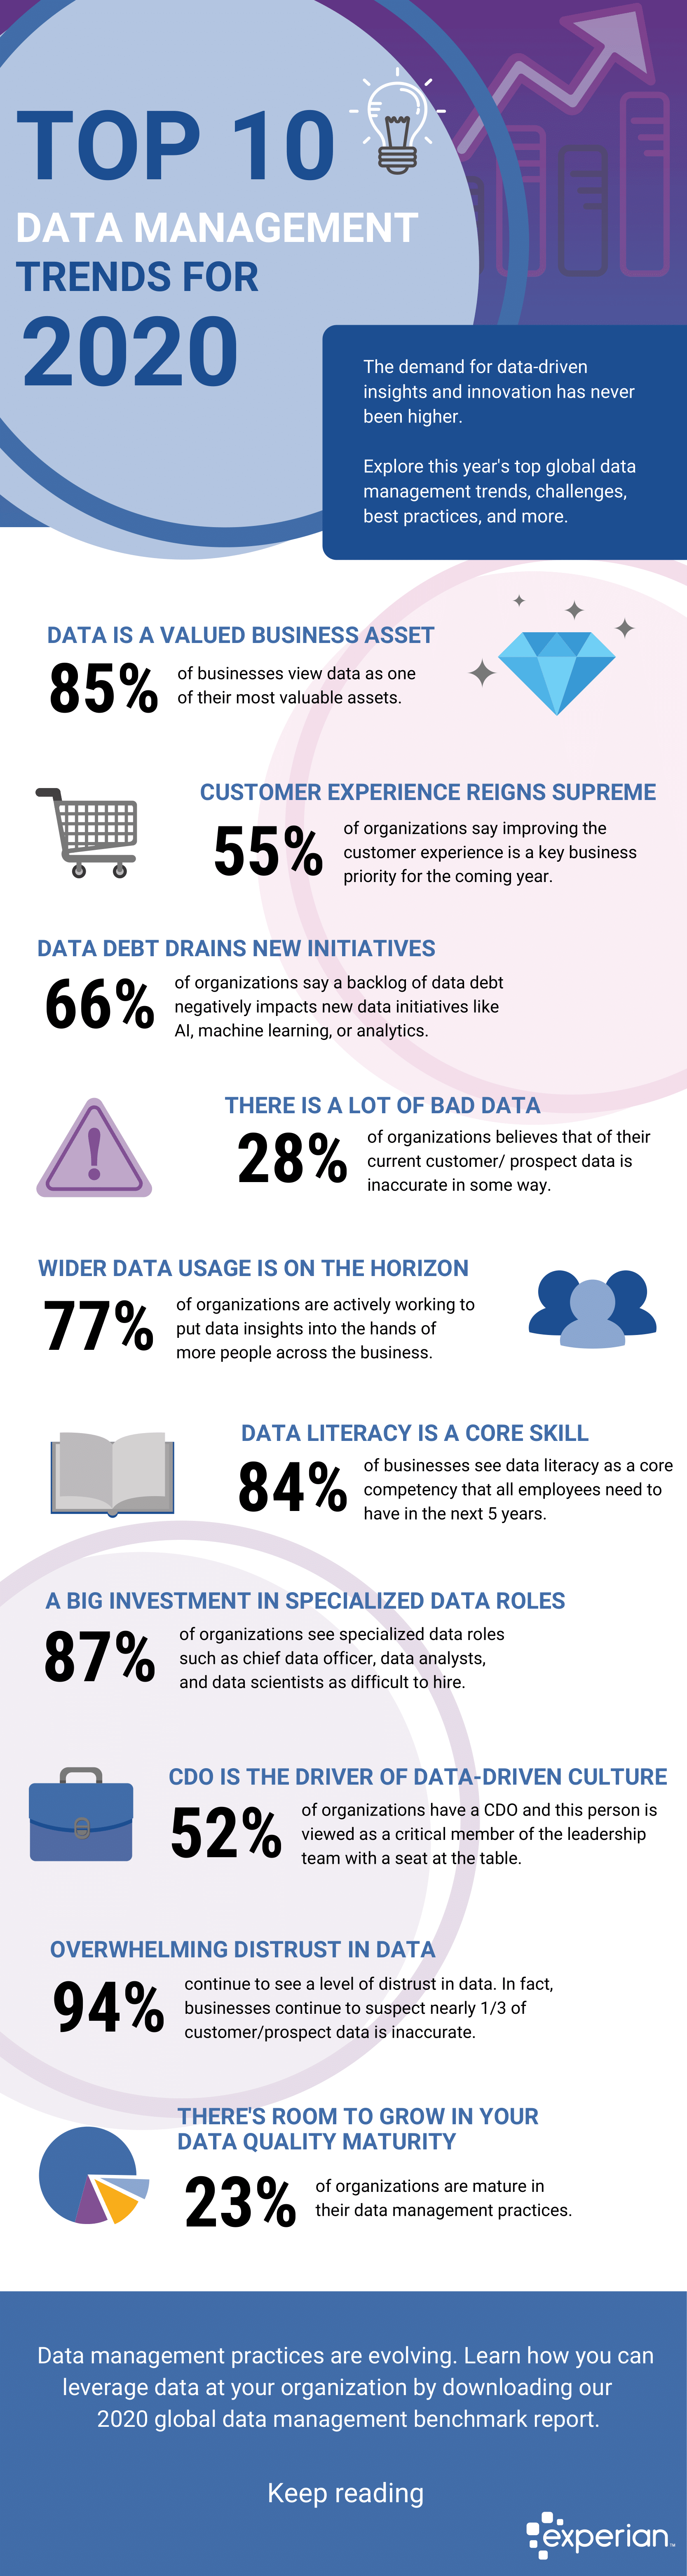 top-10-data-management-trends-for-2020-1.png